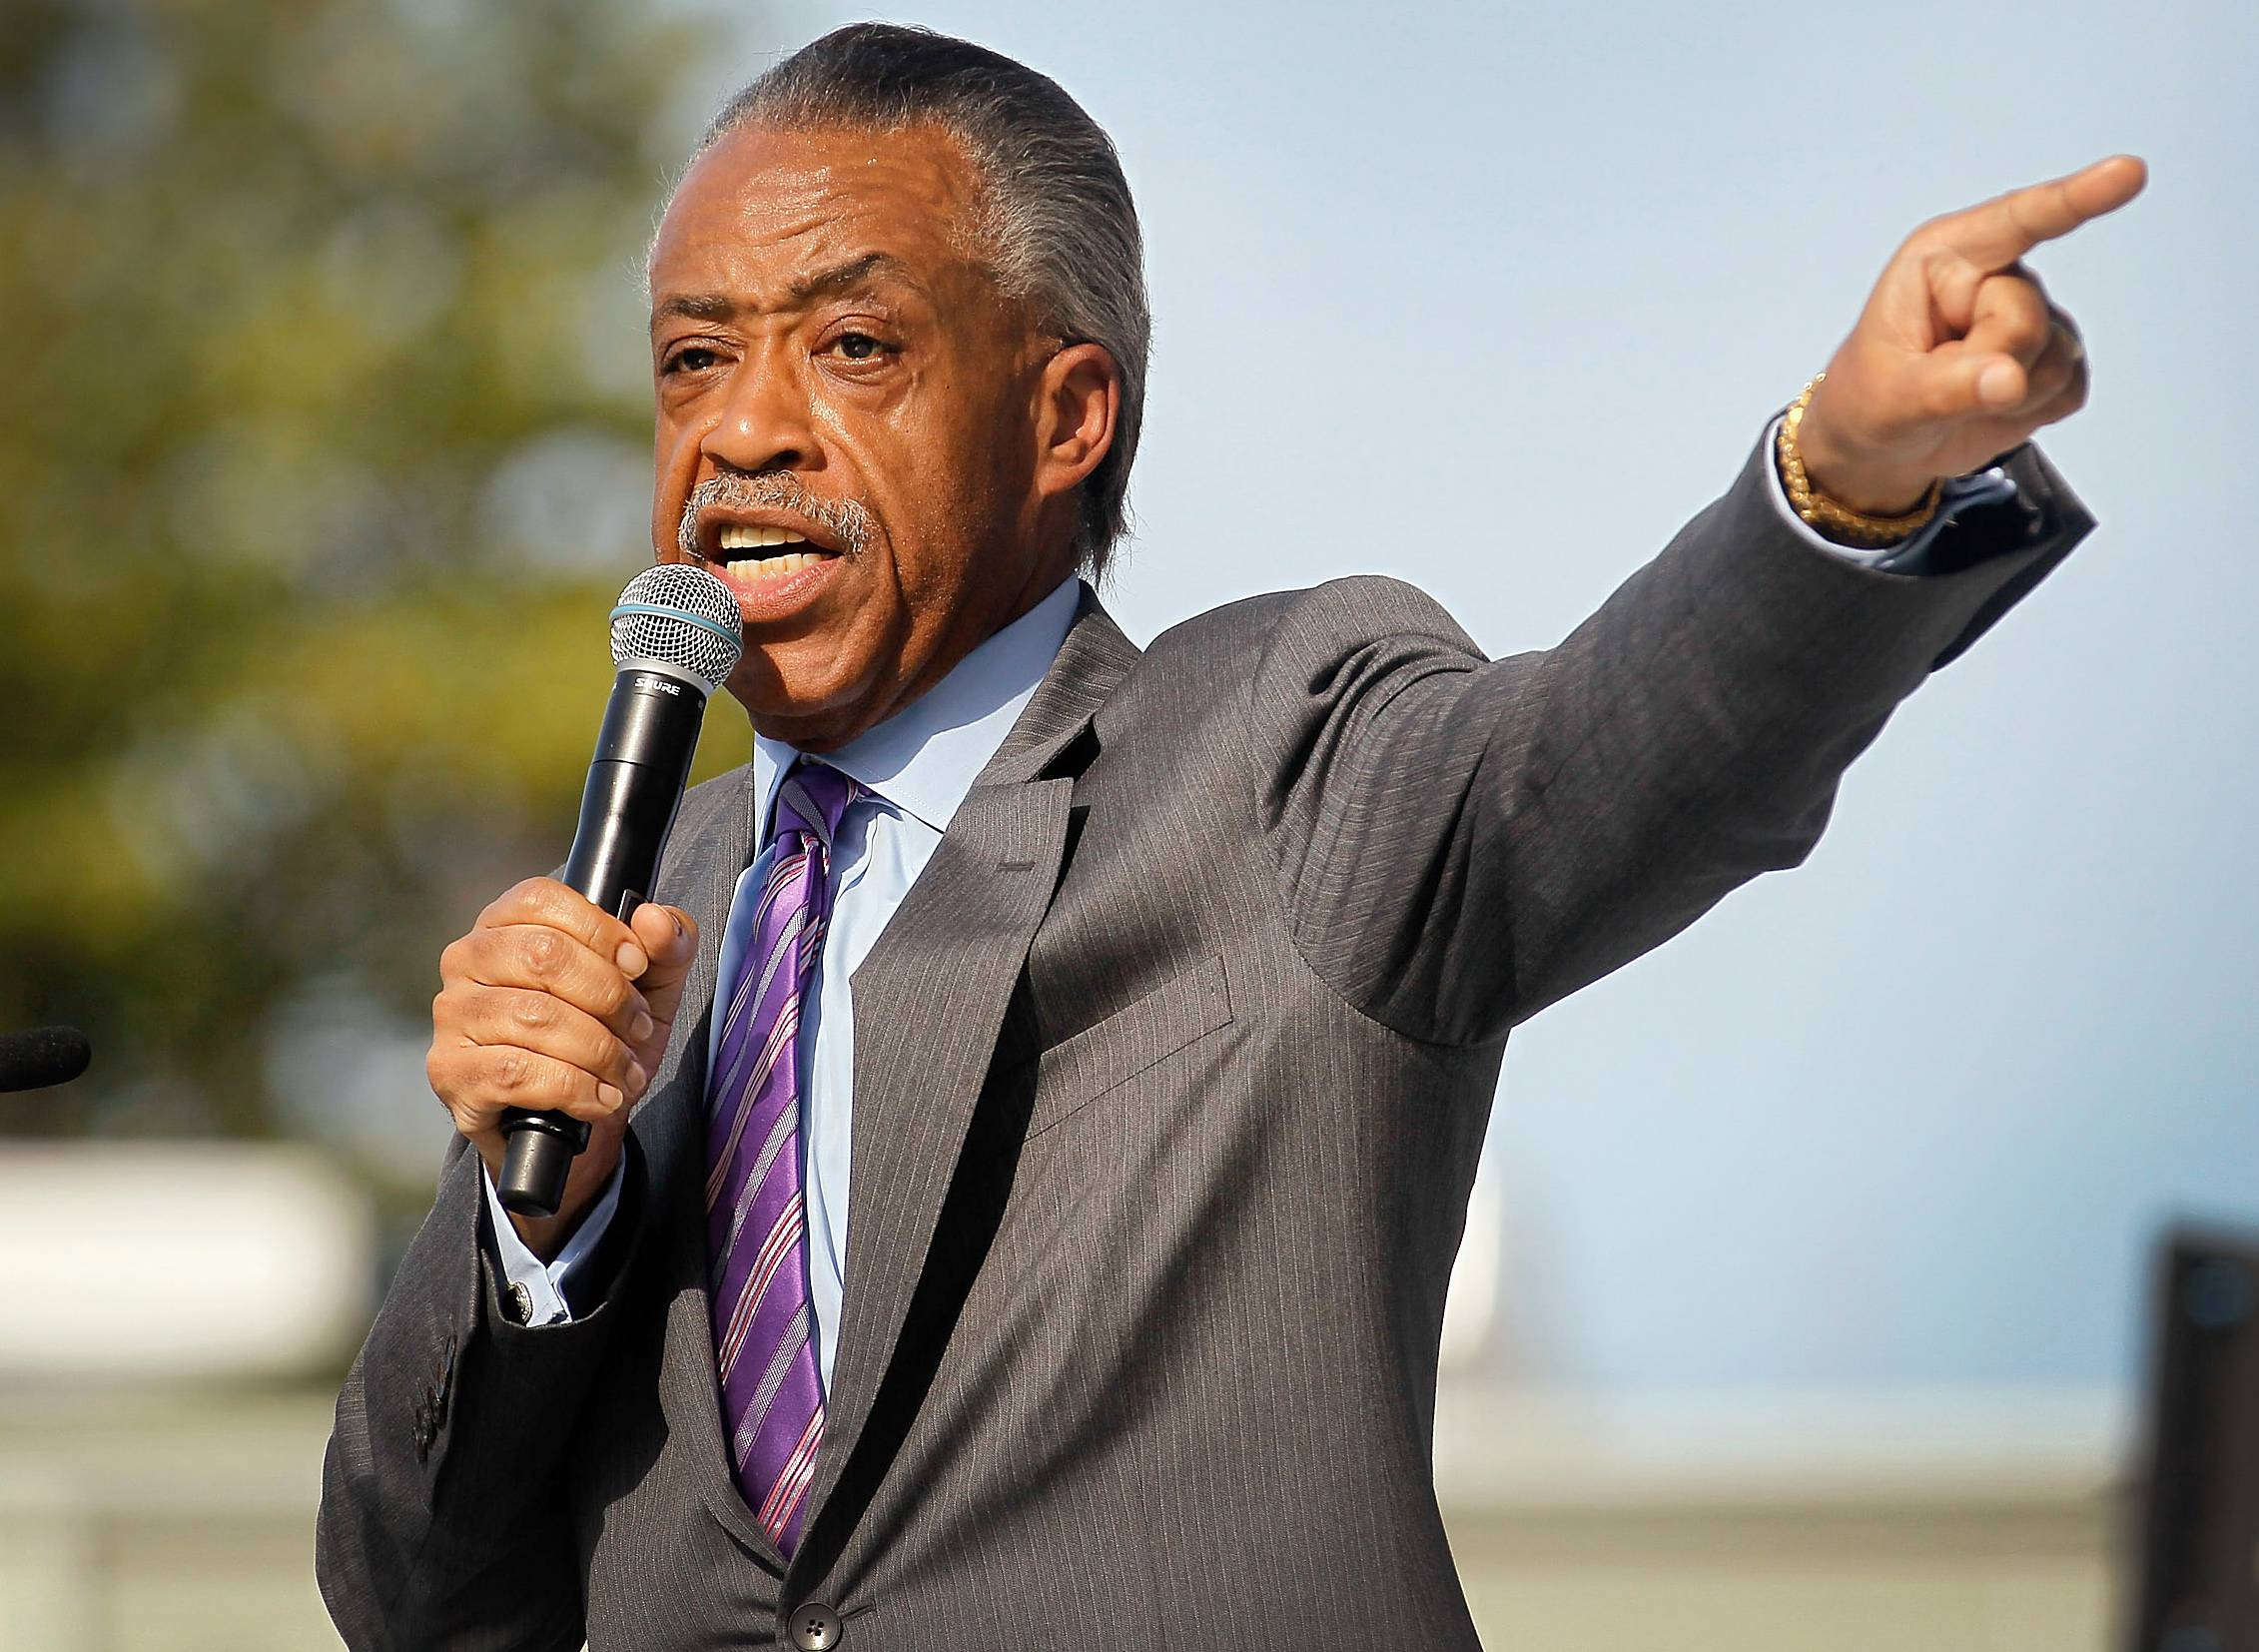 """Rev. Al Sharpton - """"As a Baptist minister, I don't have the right to impose my views on anyone else. If committed gay and lesbian couples want to marry, that is their business; none of us should stand in their way,"""" Sharpton saidin an online video in February.(Photo: Joe Raedle/Getty Images)"""